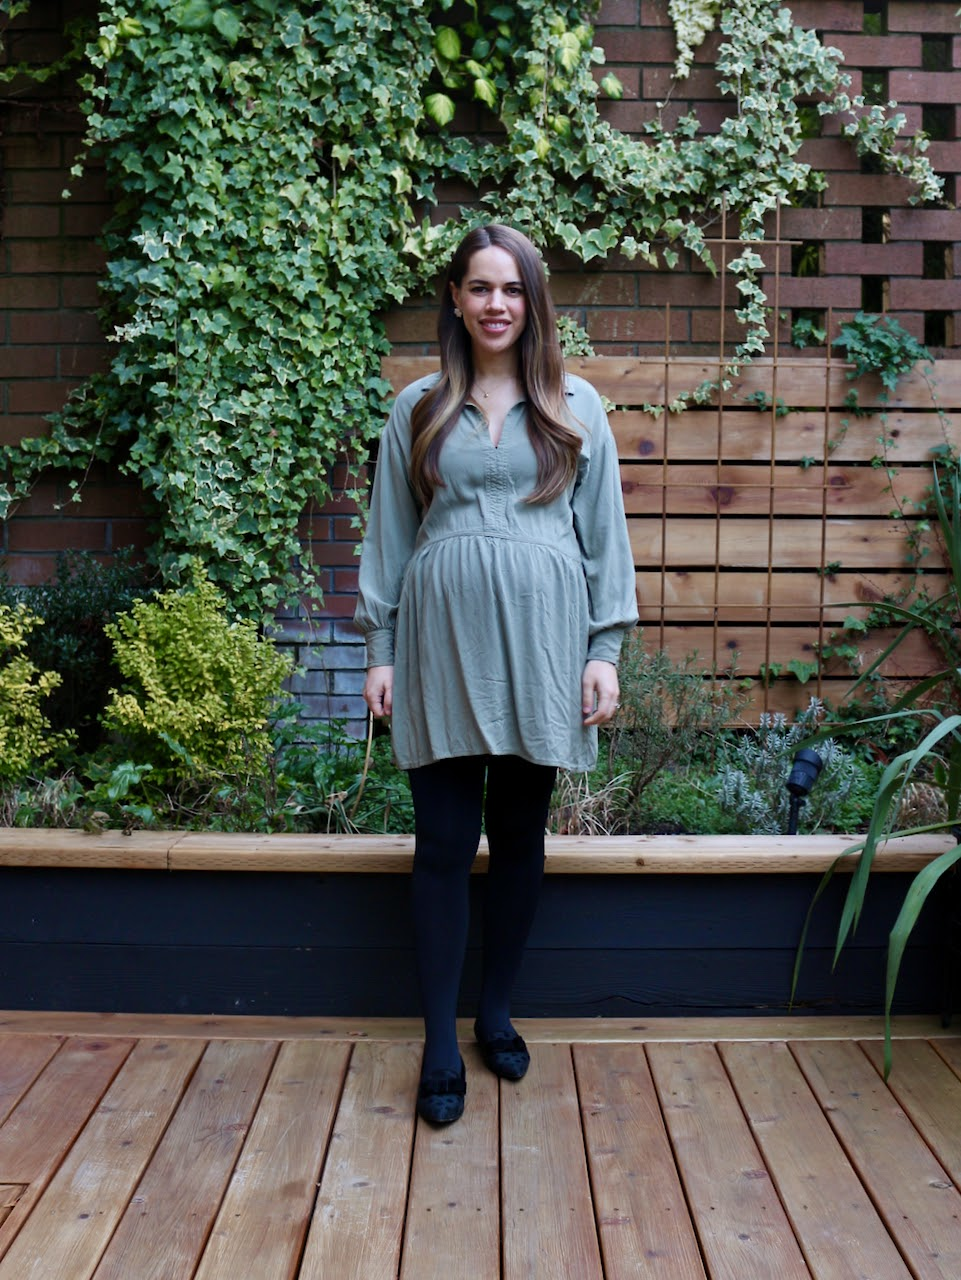 Jules in Flats - Airy Long Sleeve Swing Dress (Business Casual Workwear on a Budget)